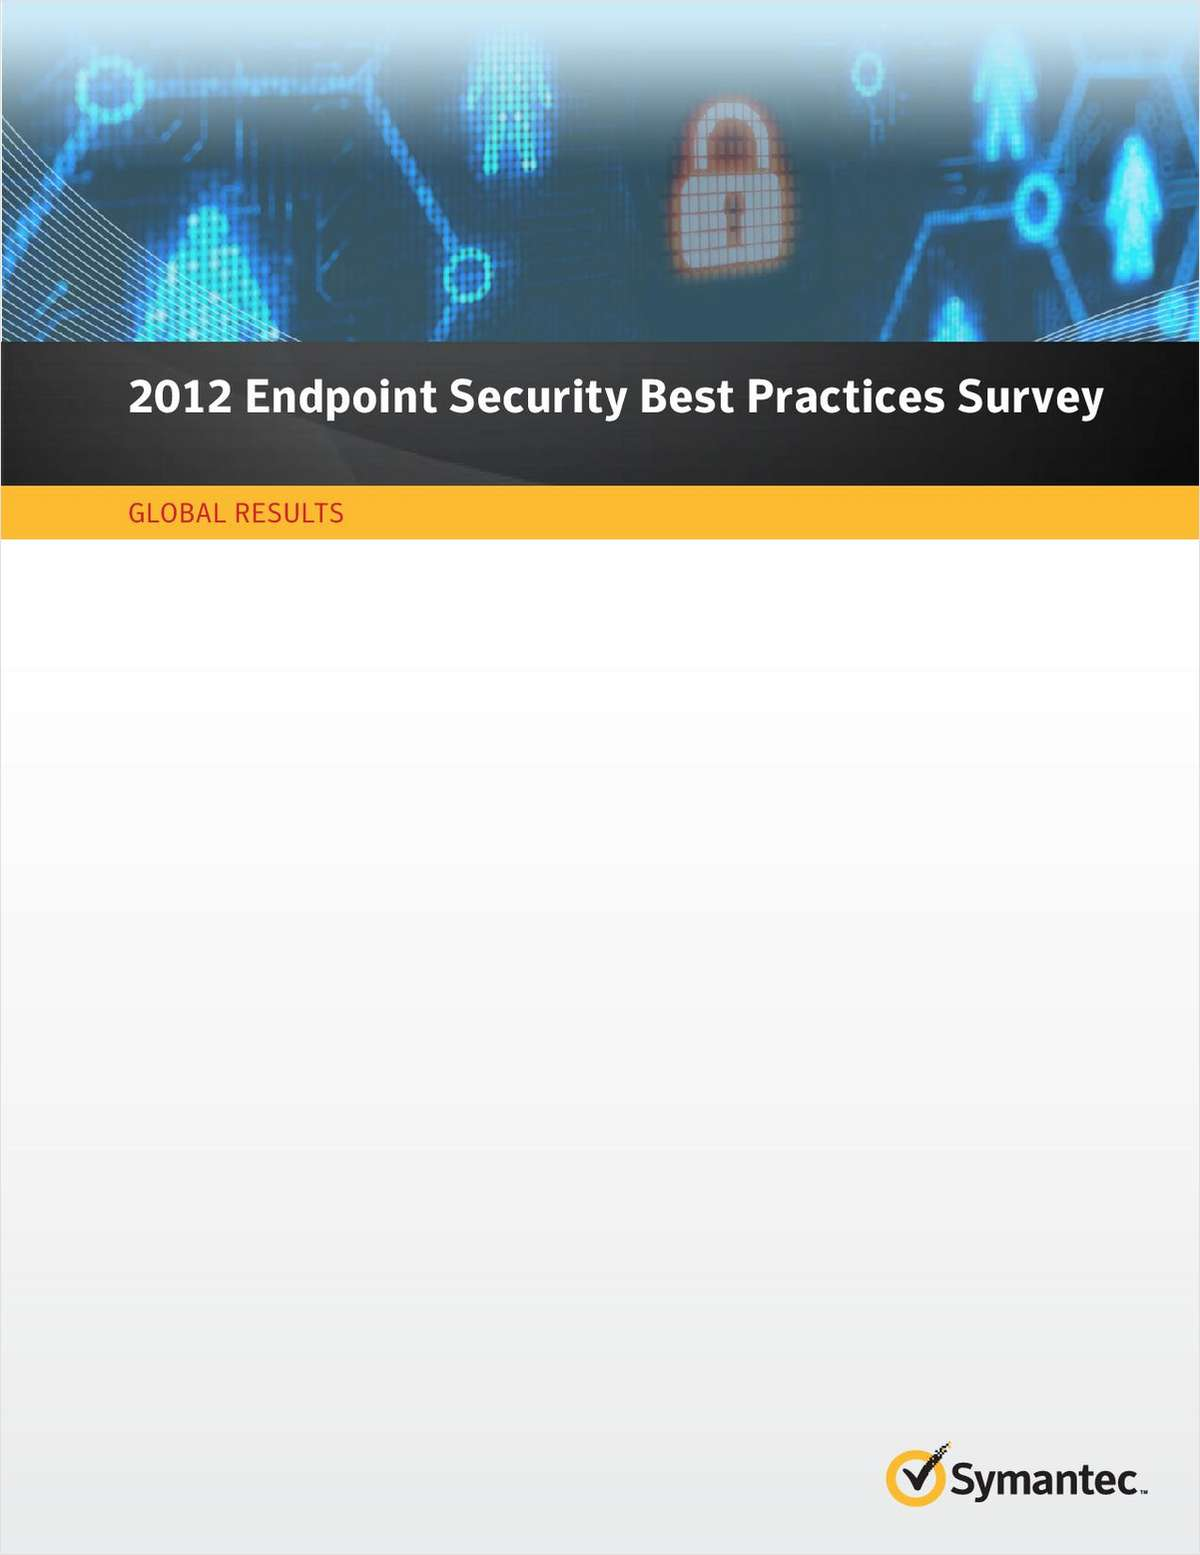 2012 Endpoint Security Best Practices Survey: Global Results